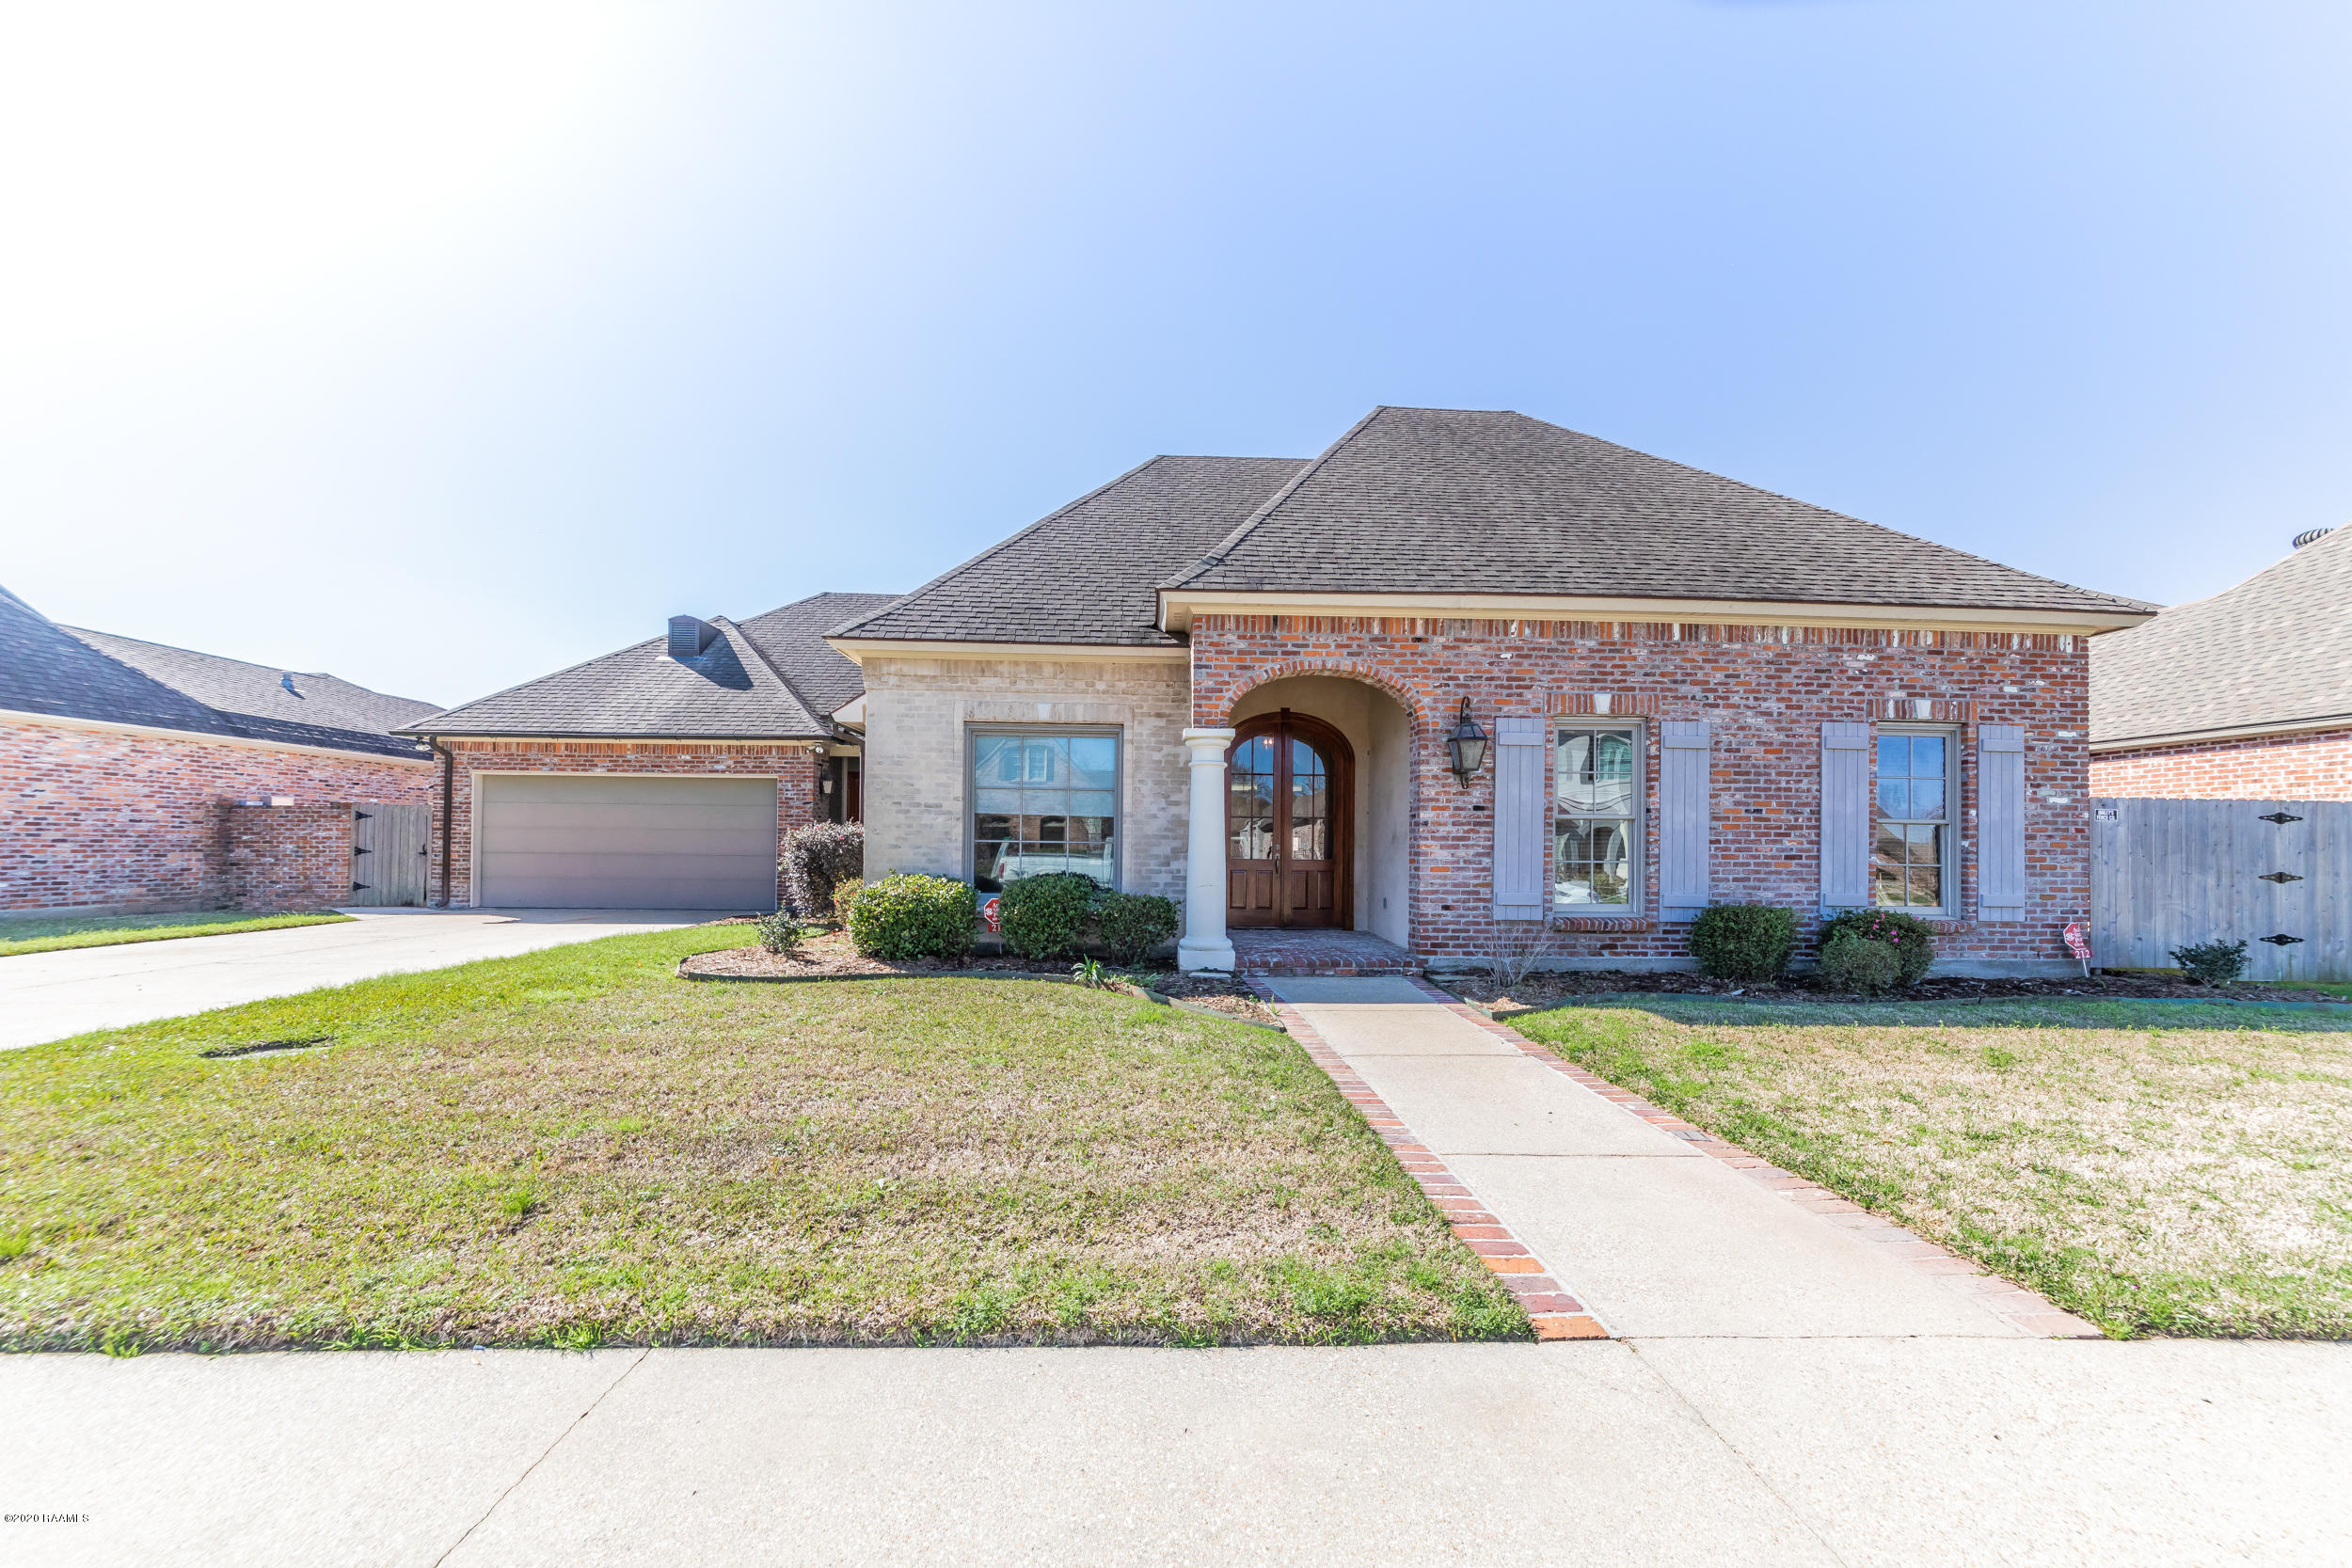 212 Brahmwell Court, Lafayette, LA 70508 Photo #3